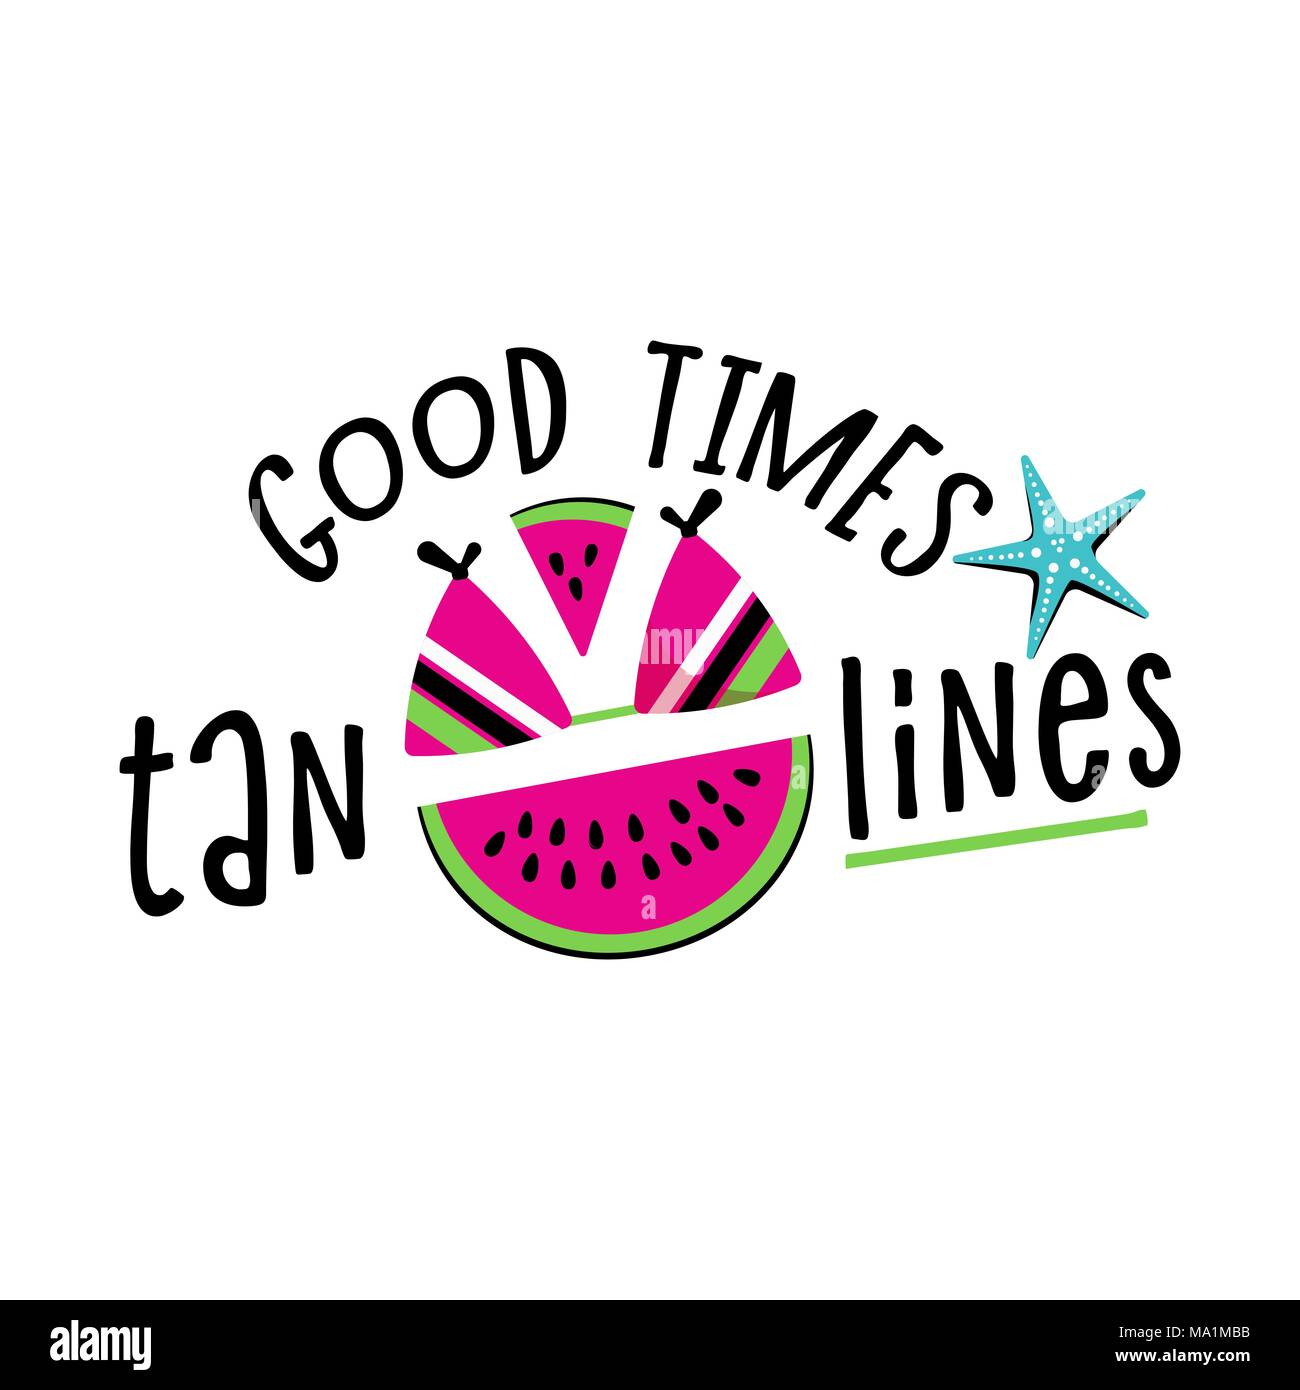 Good times and tan lines. Bright multi-colored letters. Modern and stylish hand drawn lettering. Quote. Hand-painted inscription. Motivational calligraphy poster. Stylish font typography for banner. - Stock Image